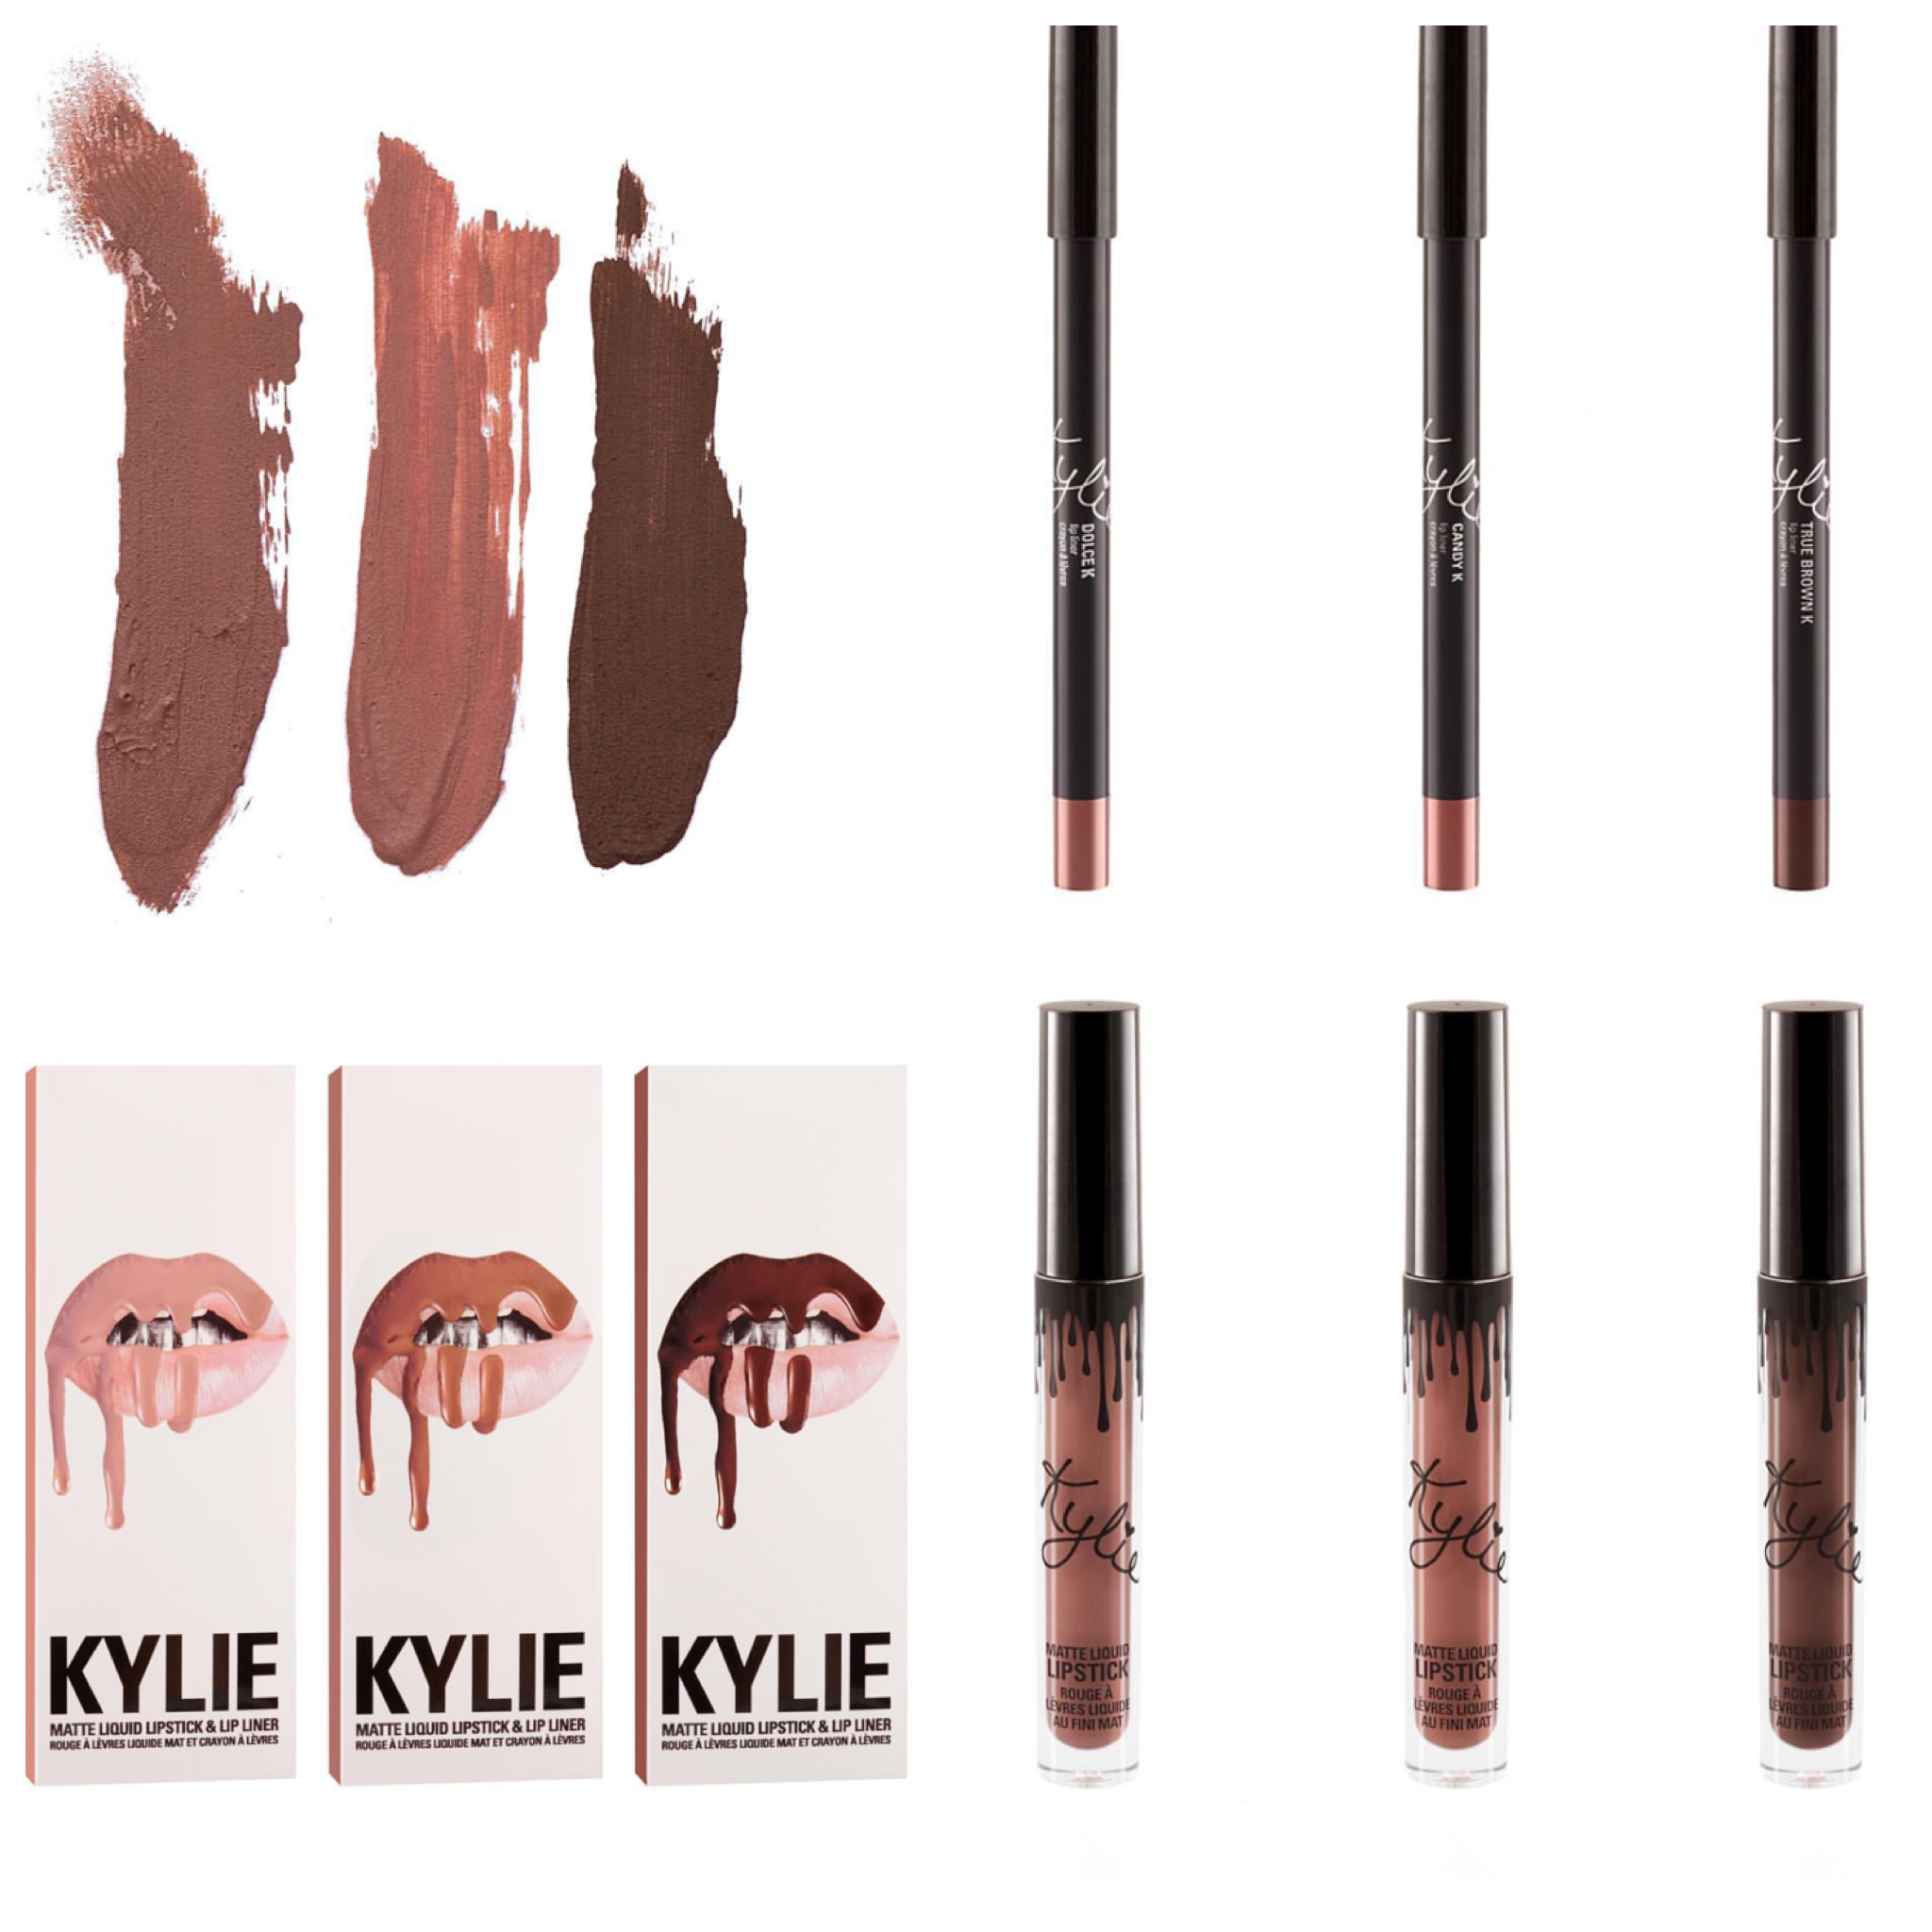 Kylie Jenner New Lipkit Dolce K Candy K True Brown K Want To Buy Not A Link To Site Just Want To Rem Kylie Jenner Lipstick Kylie Lip Kit Kylie Jenner Makeup